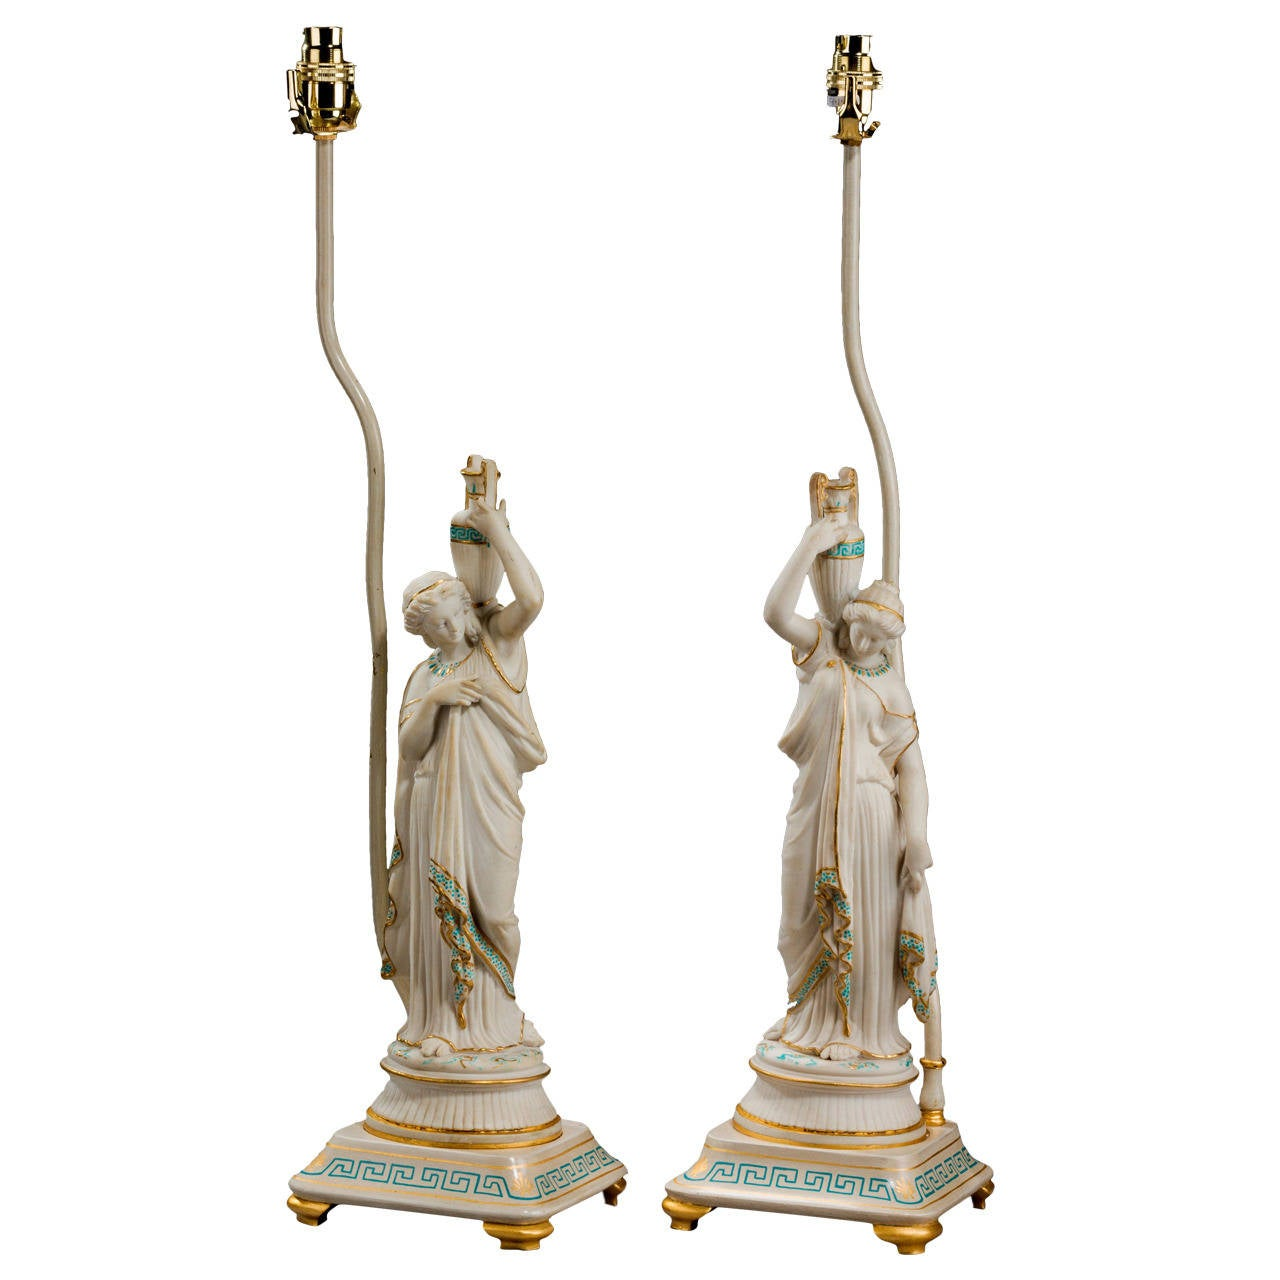 Pair of late 19th century Parian Neoclassical Lamps